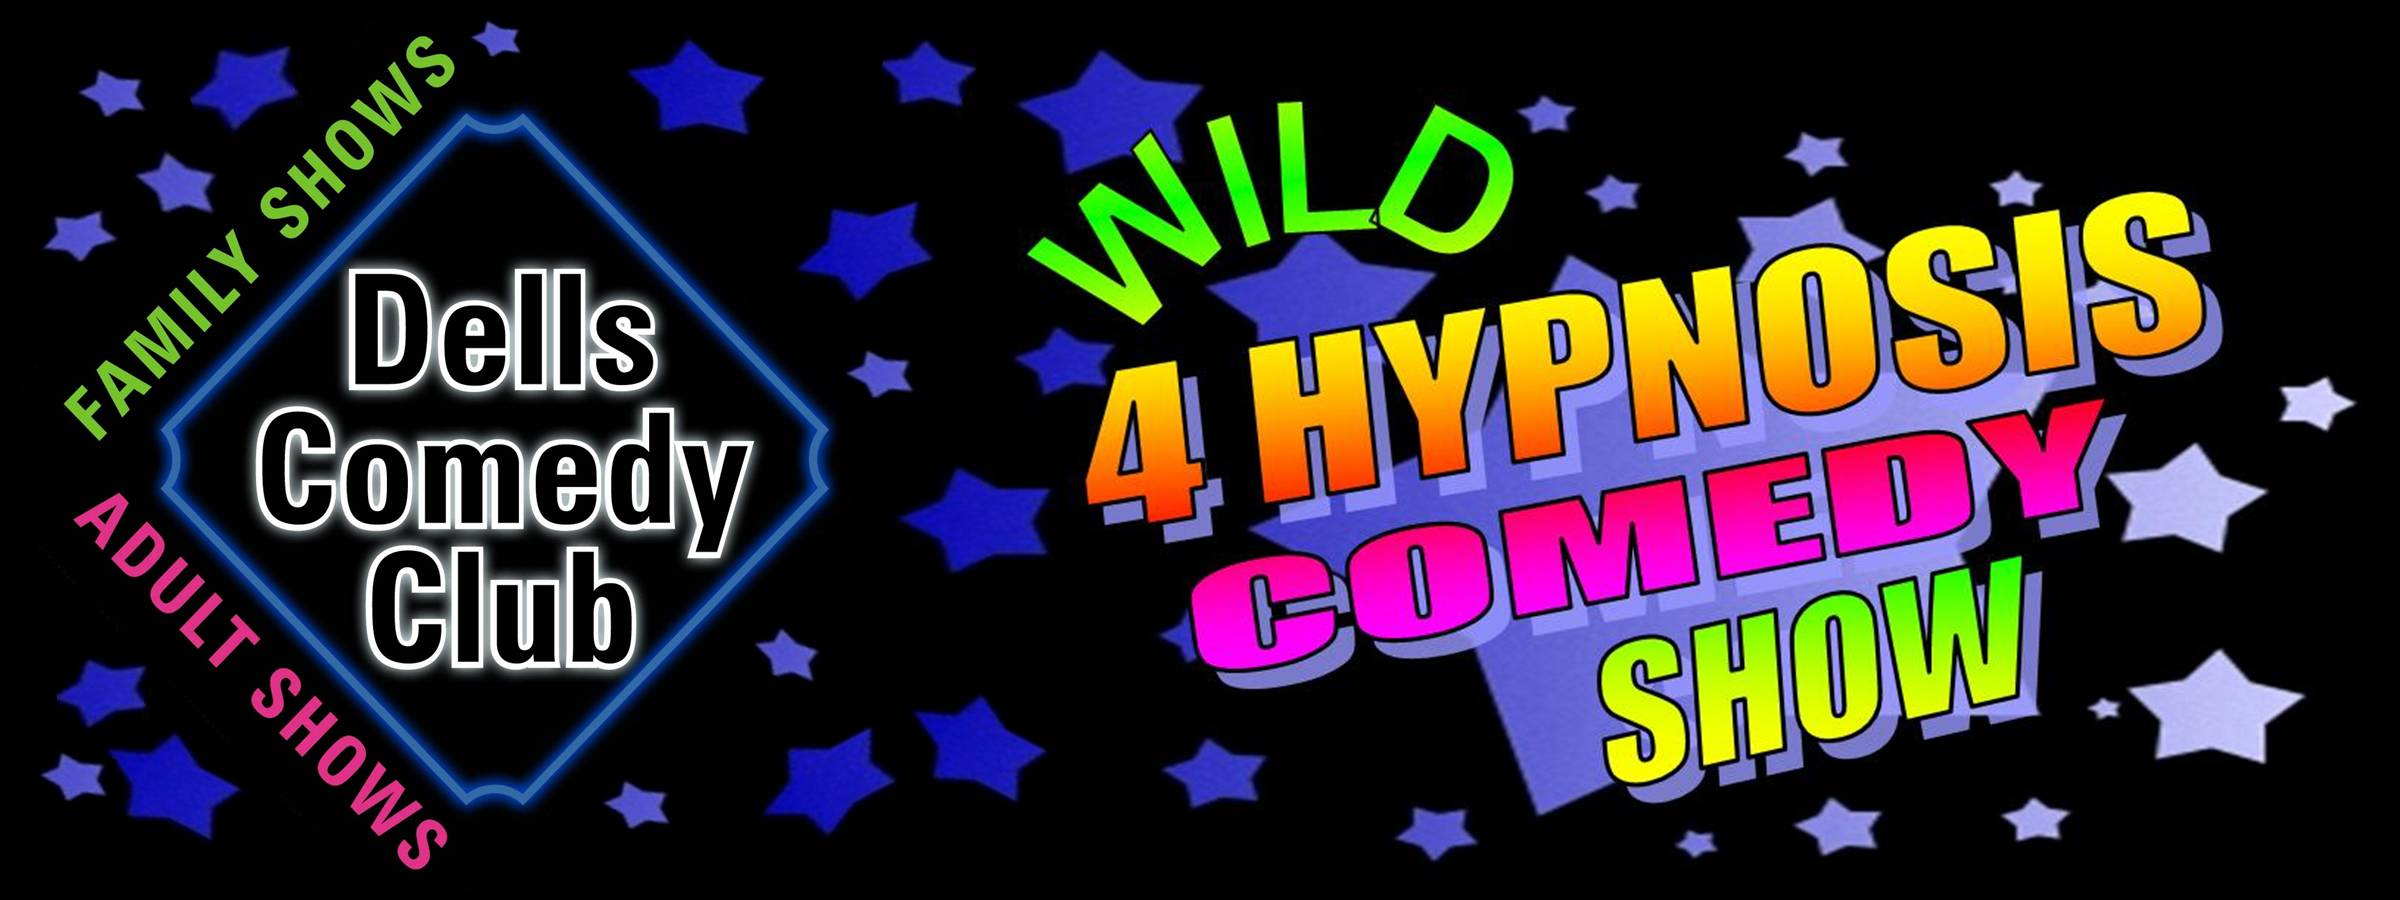 Dells Comedy Club - Home of the Wild 4 Hypnosis Comedy Show